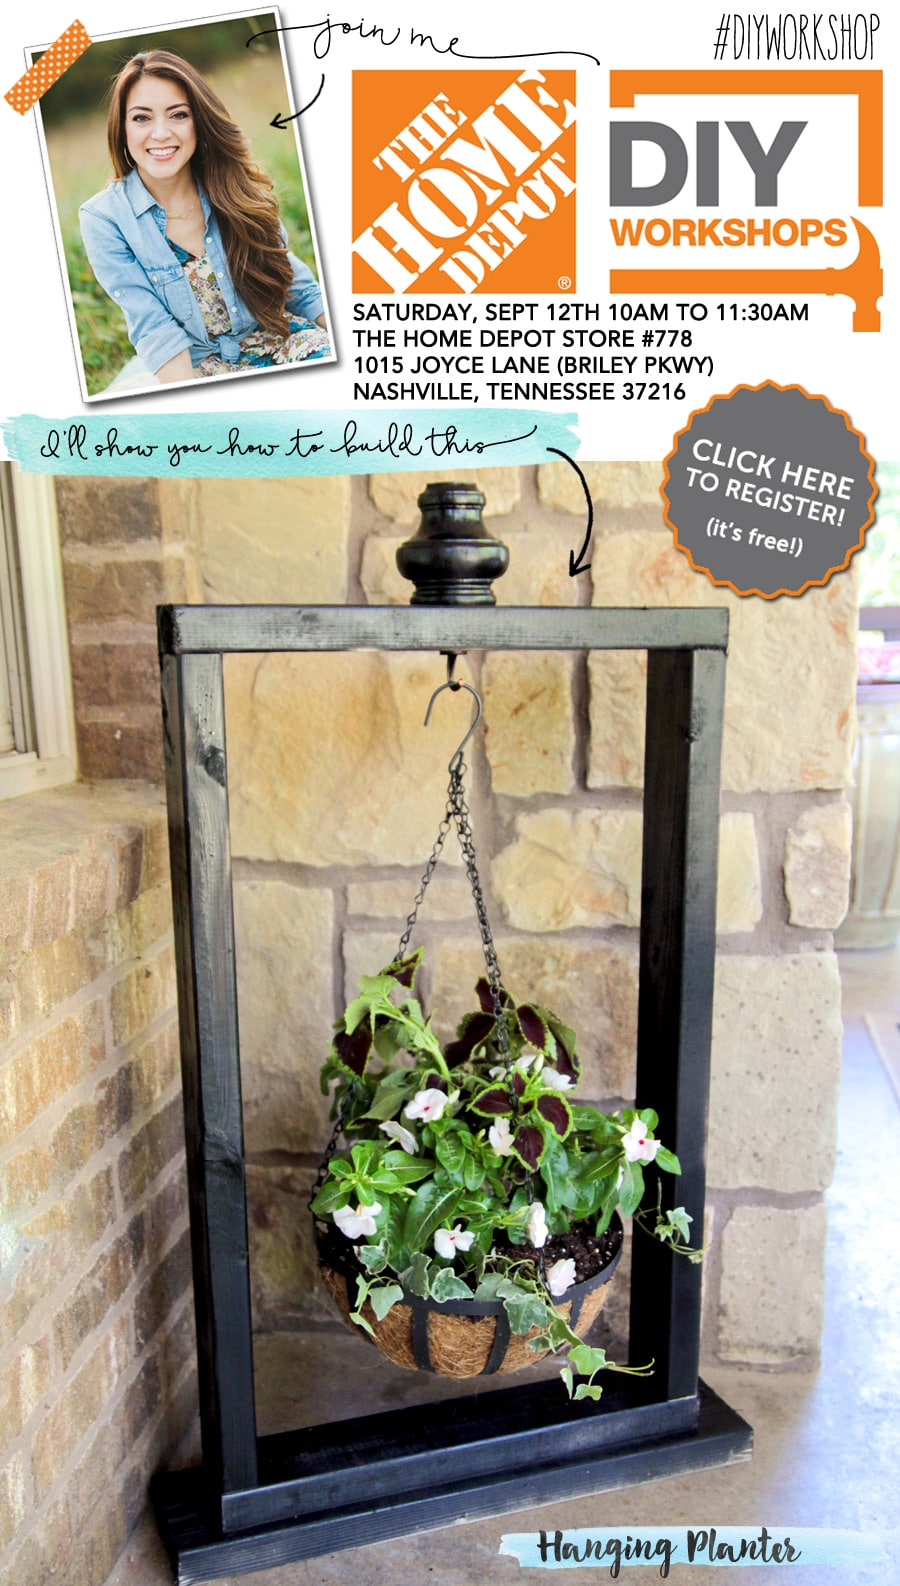 Build a hanging planter at the Home Depot DIY Workshop